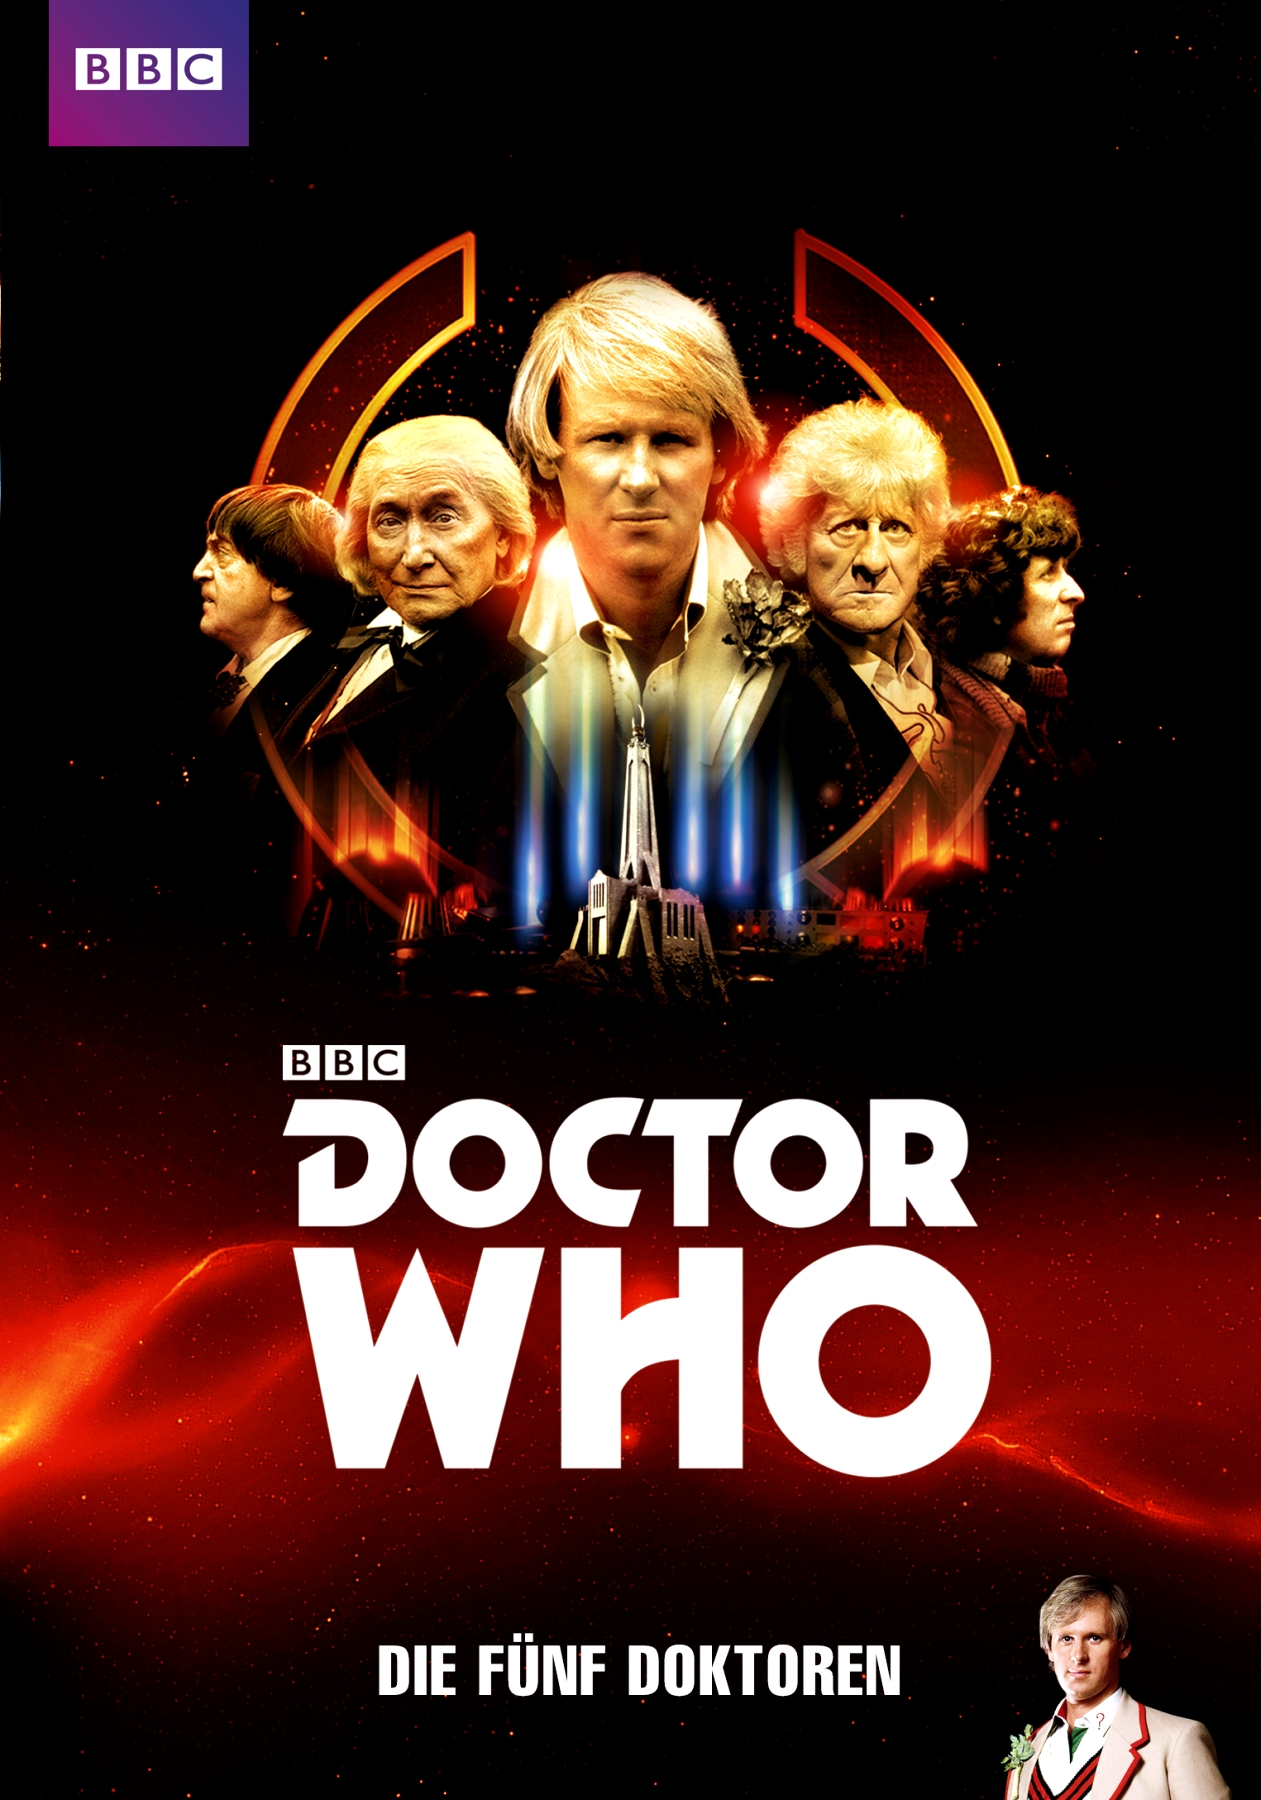 Doctor Who – Die fünf Doktoren (TV-Serie, DVD)